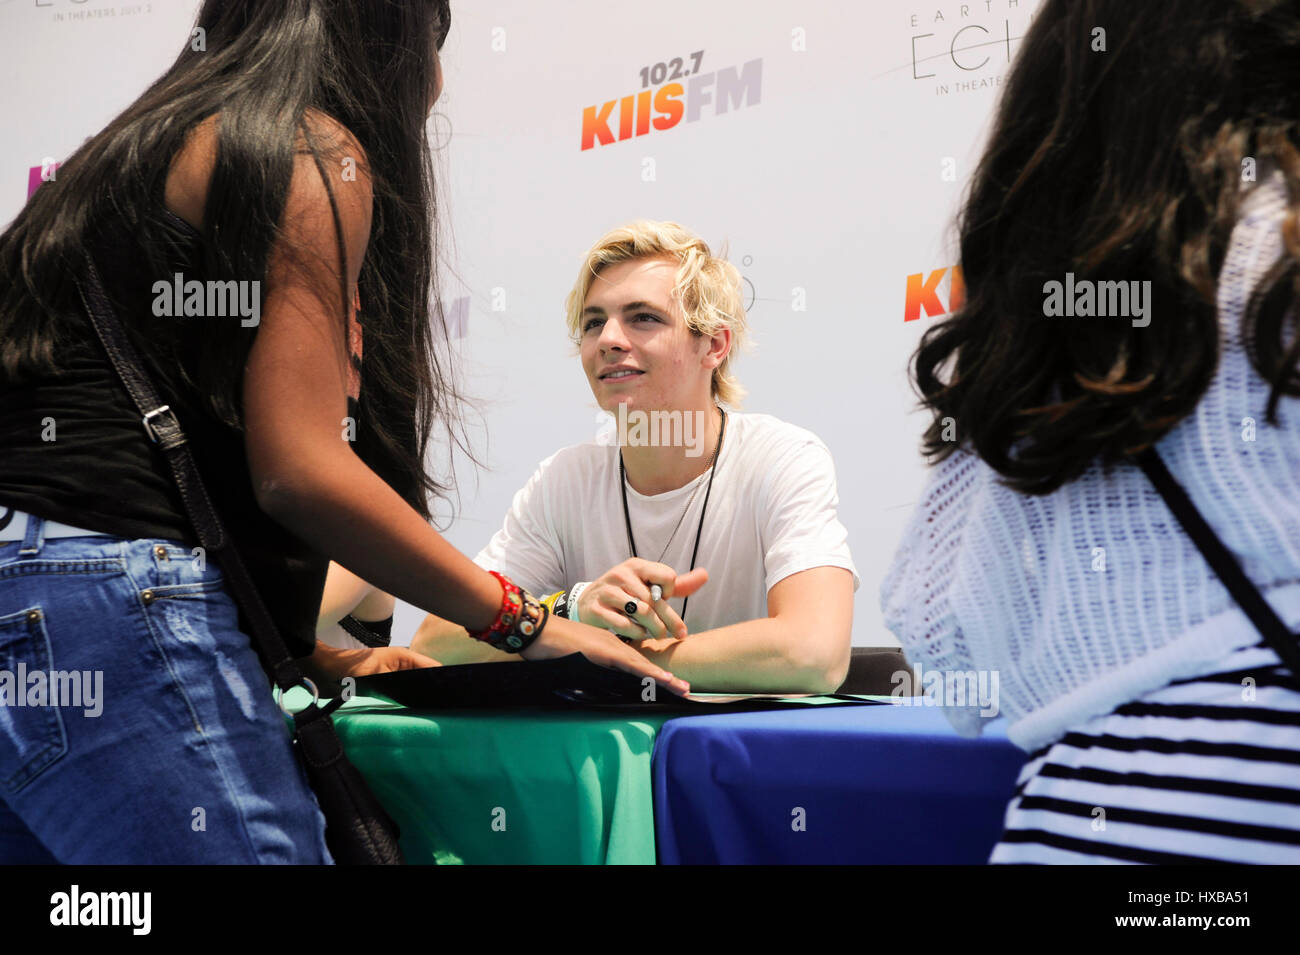 Ross lynch and r5 autograph signing booth for fans during 1027 kiis ross lynch and r5 autograph signing booth for fans during 1027 kiis fms 2014 wango tango at stubhub center on may 10 2014 in los angeles california kristyandbryce Gallery